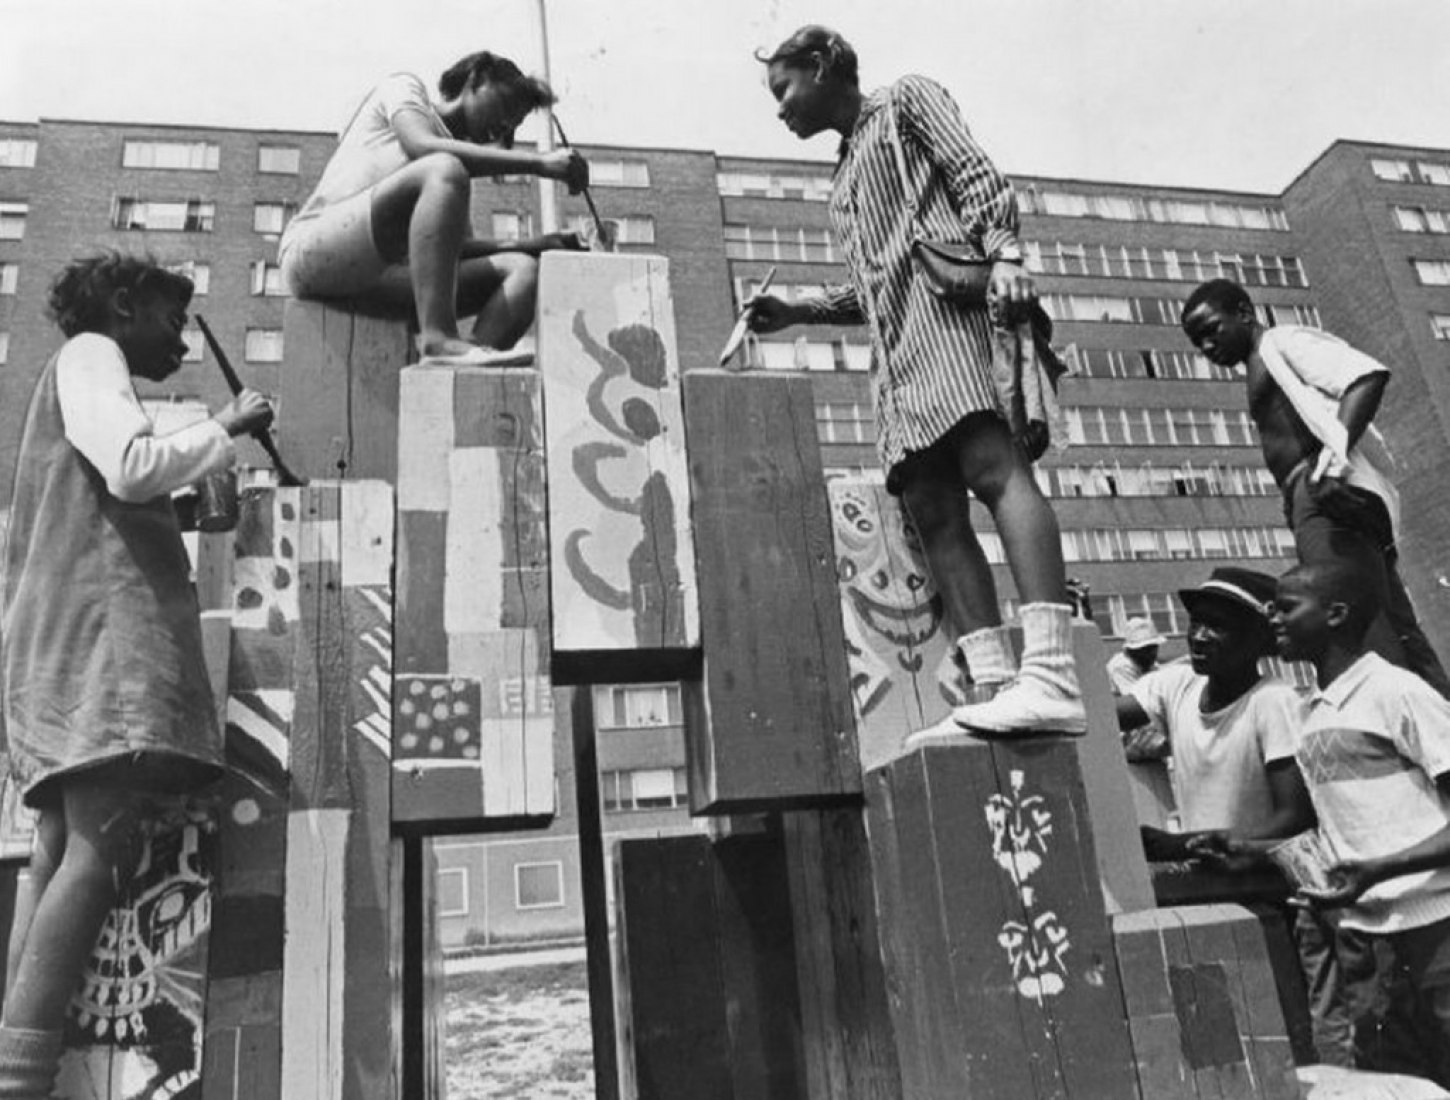 """Pruitt-Igoe"" 1968. Children painting the game area as part of a school project. Source: St. Louis Post Dispatch"